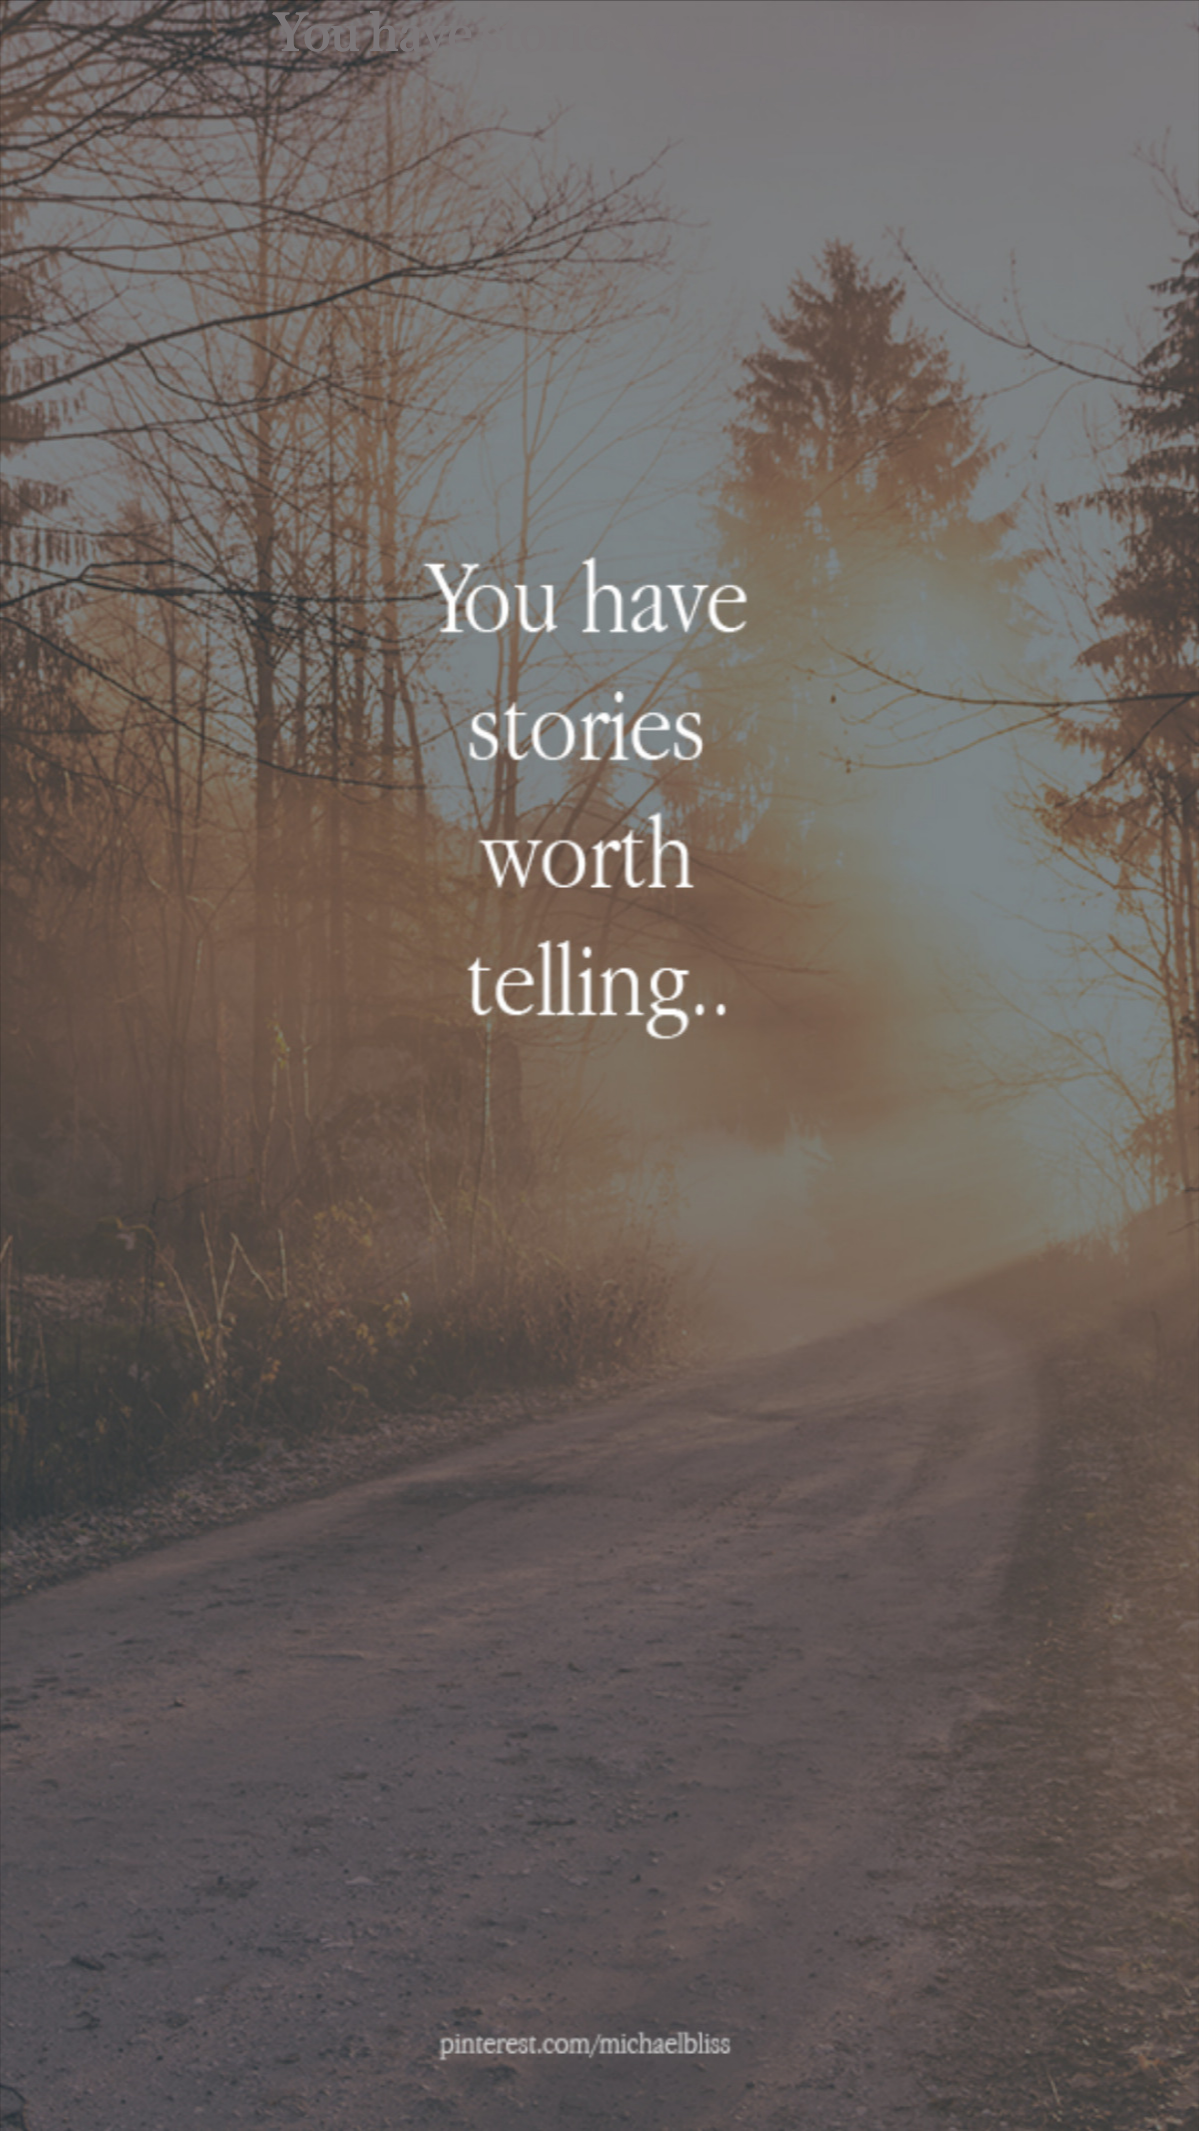 You have stories worth telling